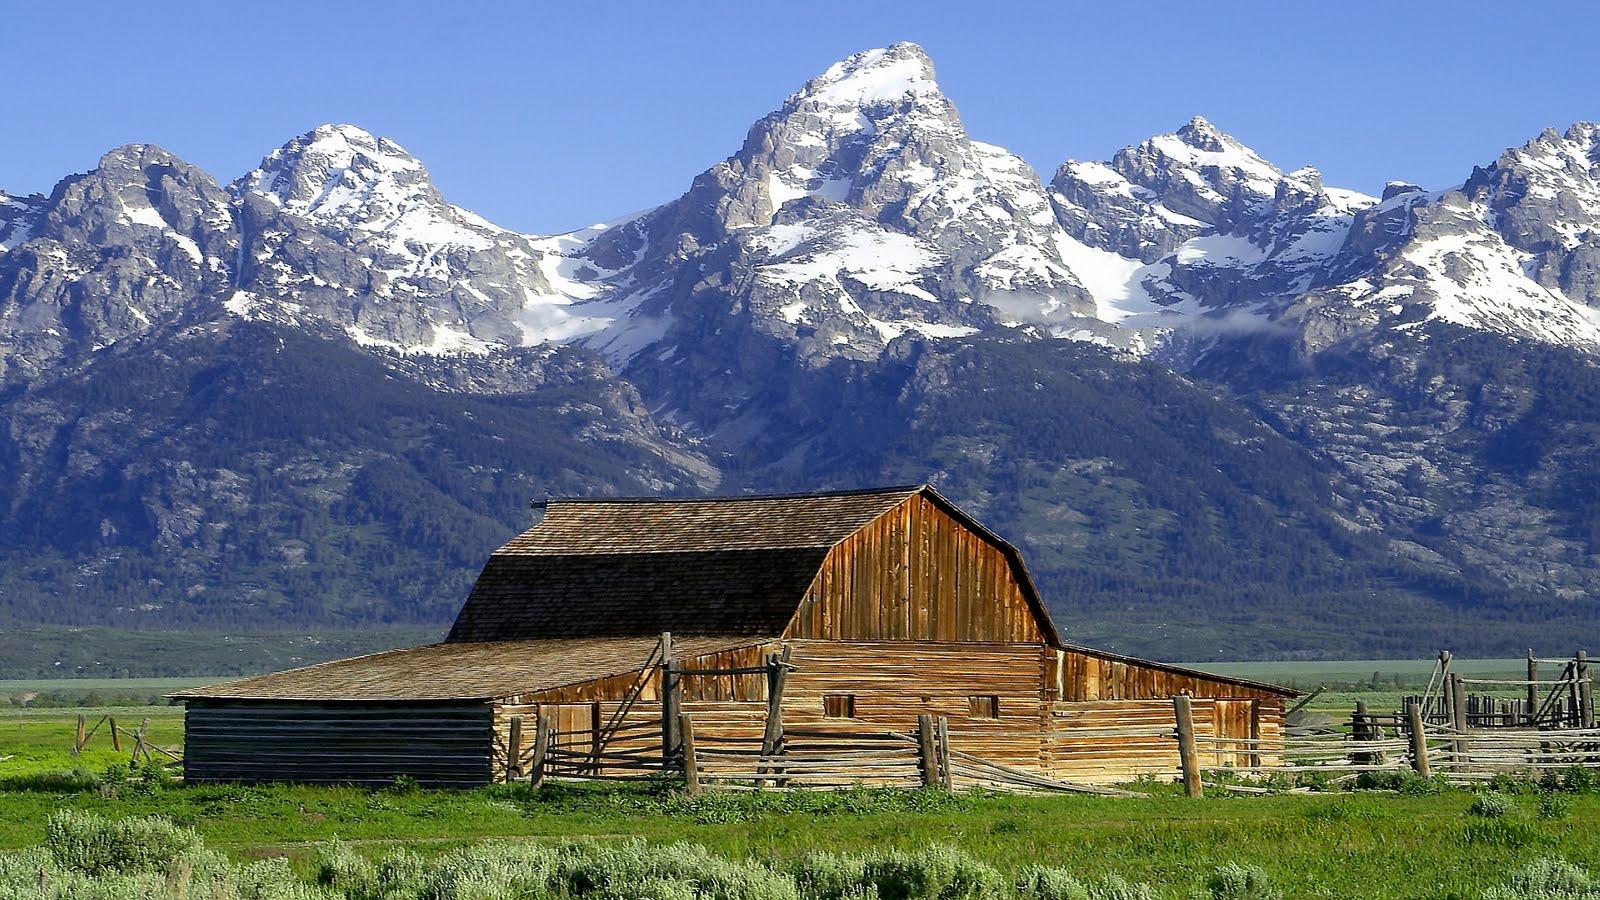 https://3.bp.blogspot.com/-0MPLyfzVxy8/TlsJhwfJCAI/AAAAAAAAAAM/5UYLdPKlAmI/s1600/barns-grand-tetons-photography-art-image.jpg